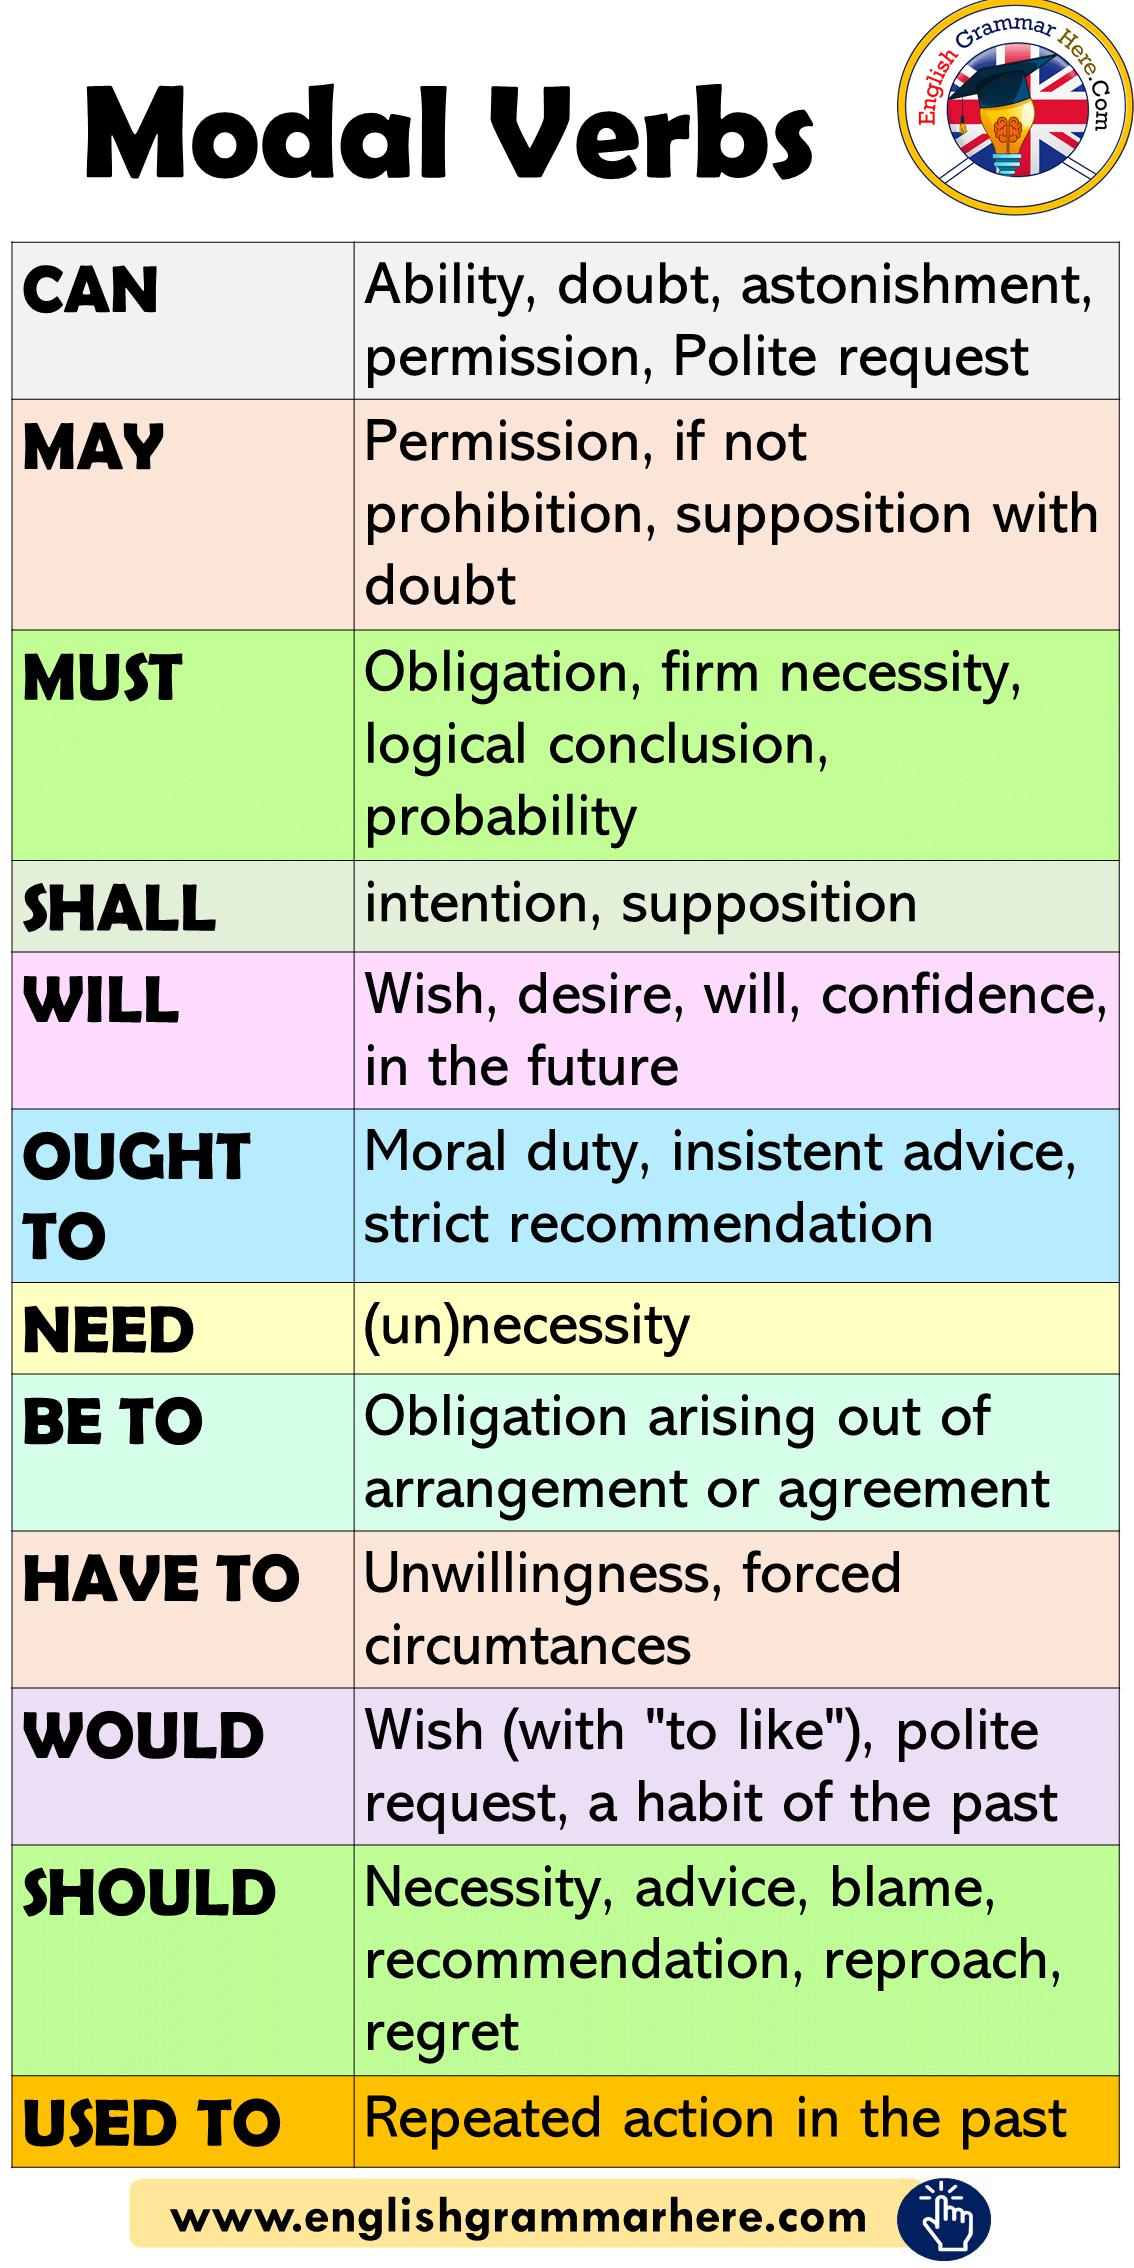 Modal Verbs In English How To Use Modals English Grammar Here Verb Grammar Learn English Words English Vocabulary Words English Writing Skills [ 2268 x 1134 Pixel ]